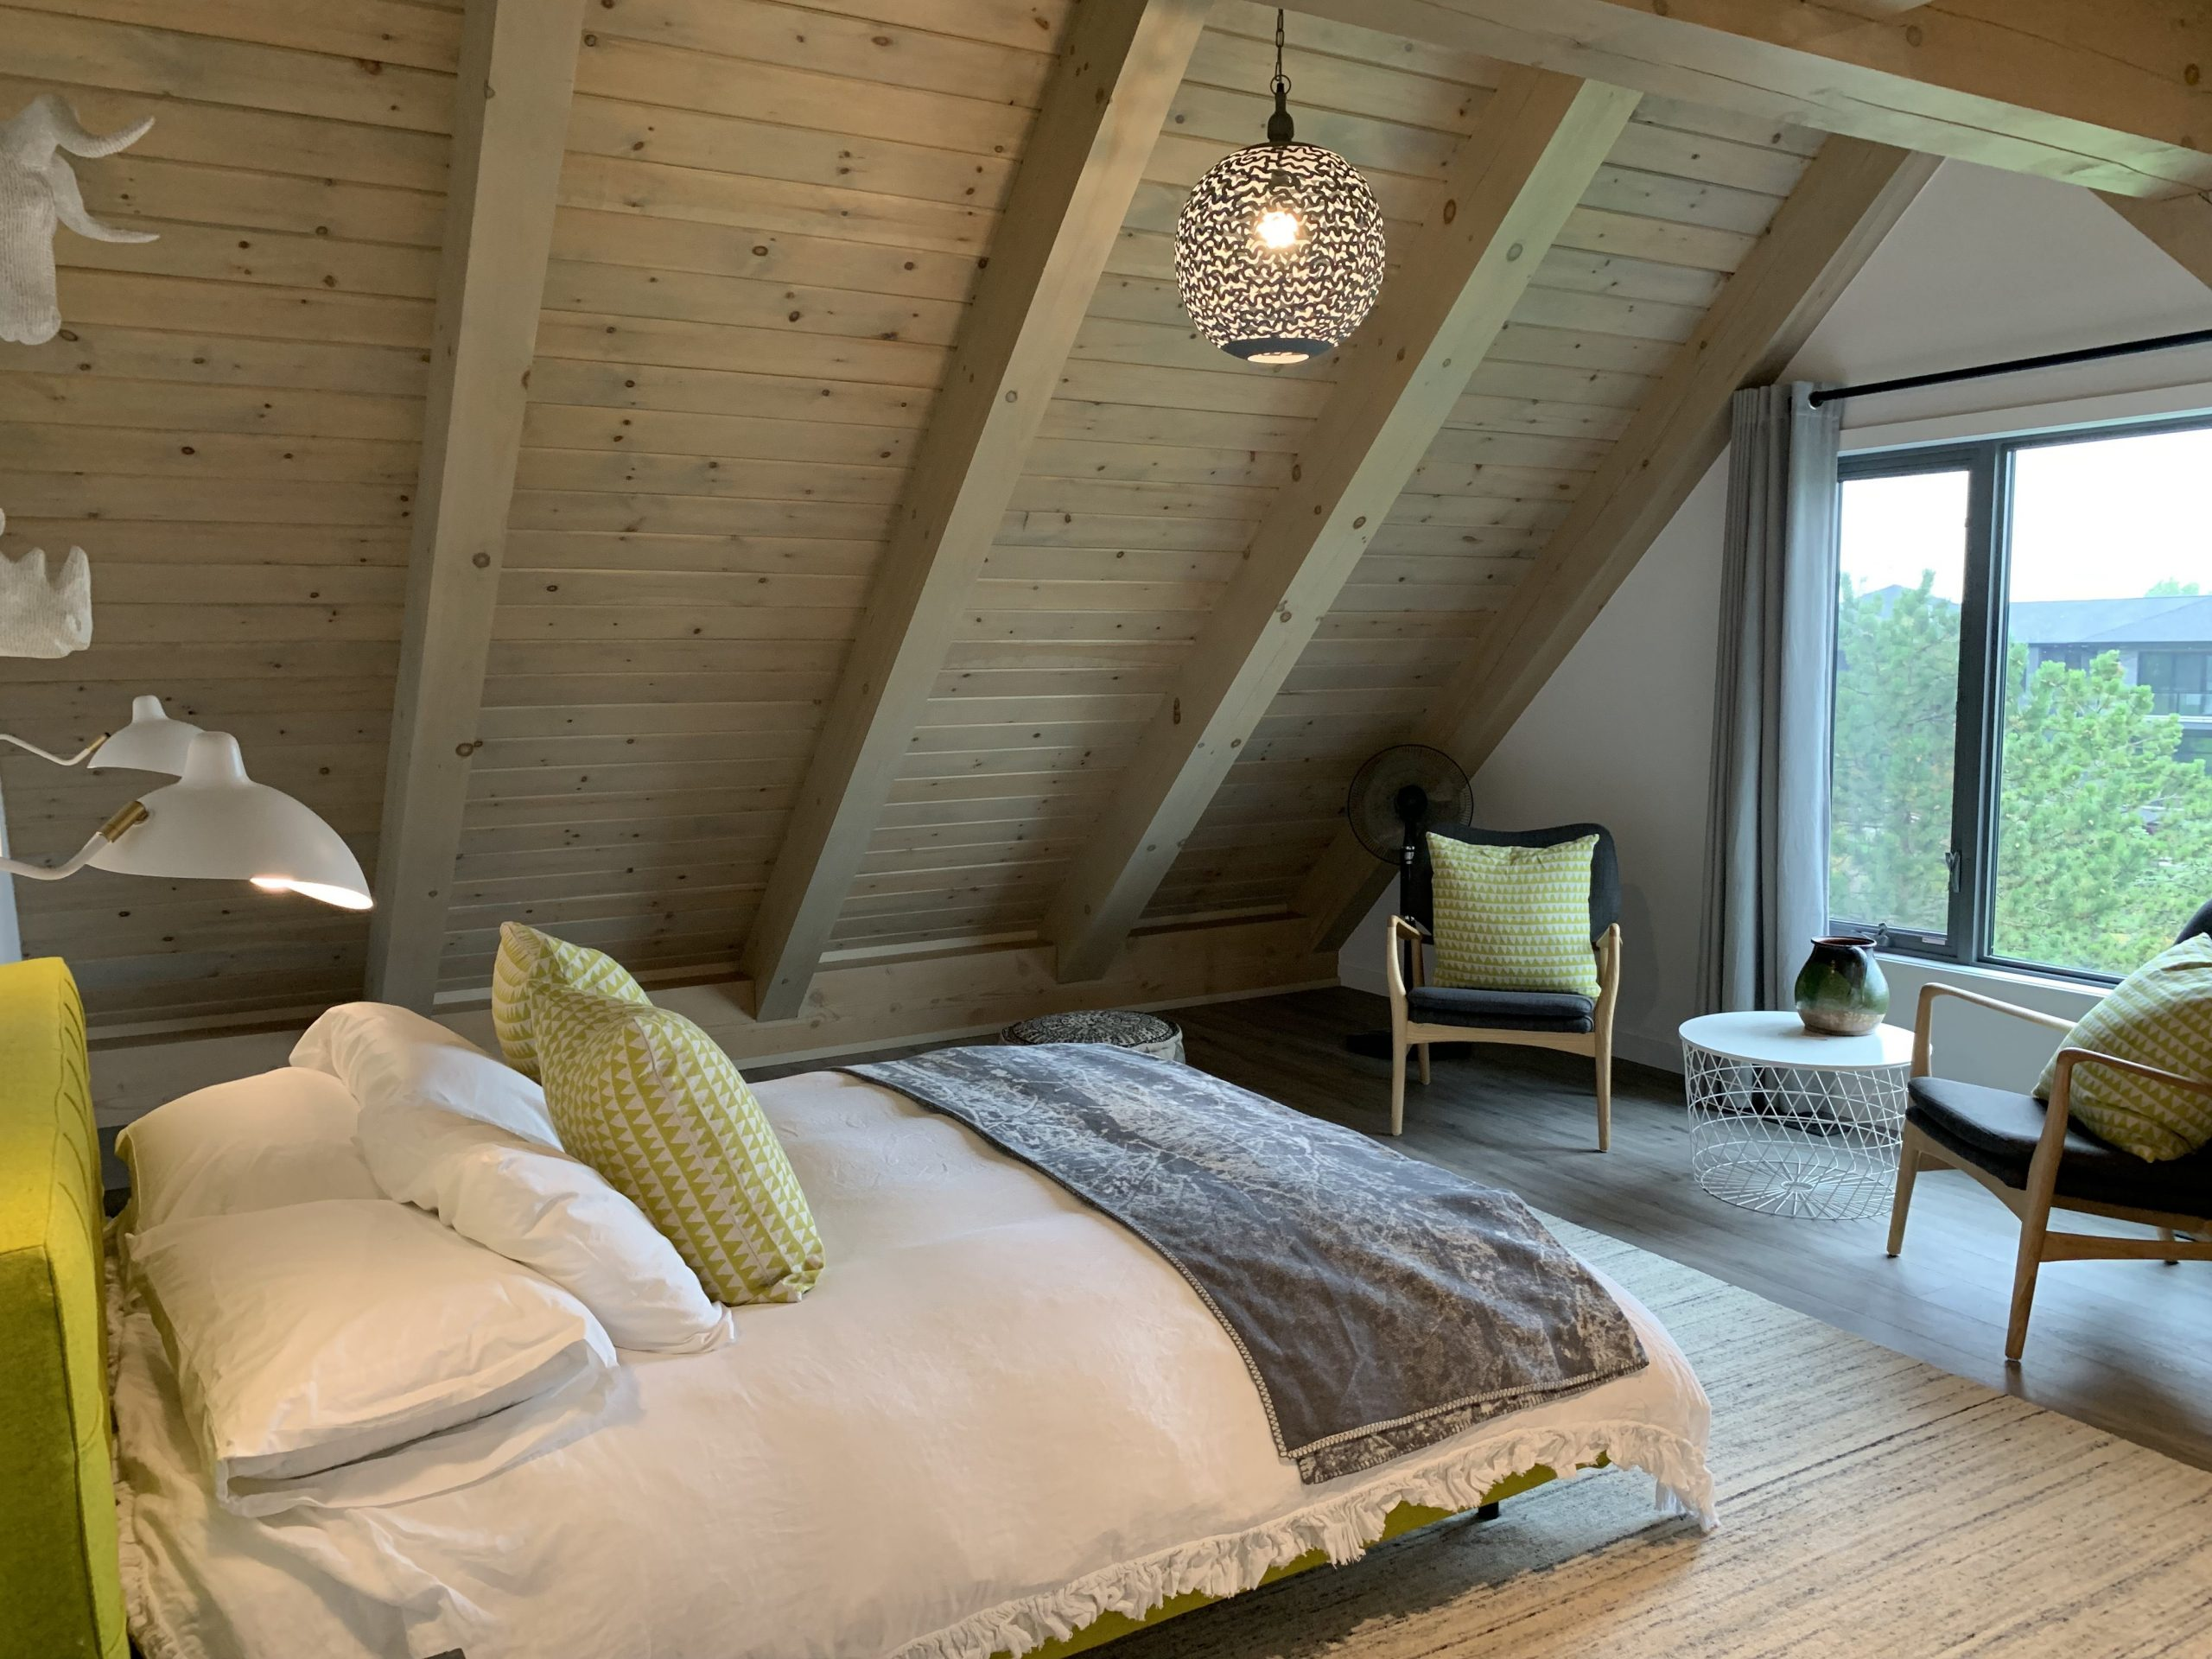 Normerica Timber Frame, Interior, Bedroom, Sloped Ceiling, Modern, Contemporary